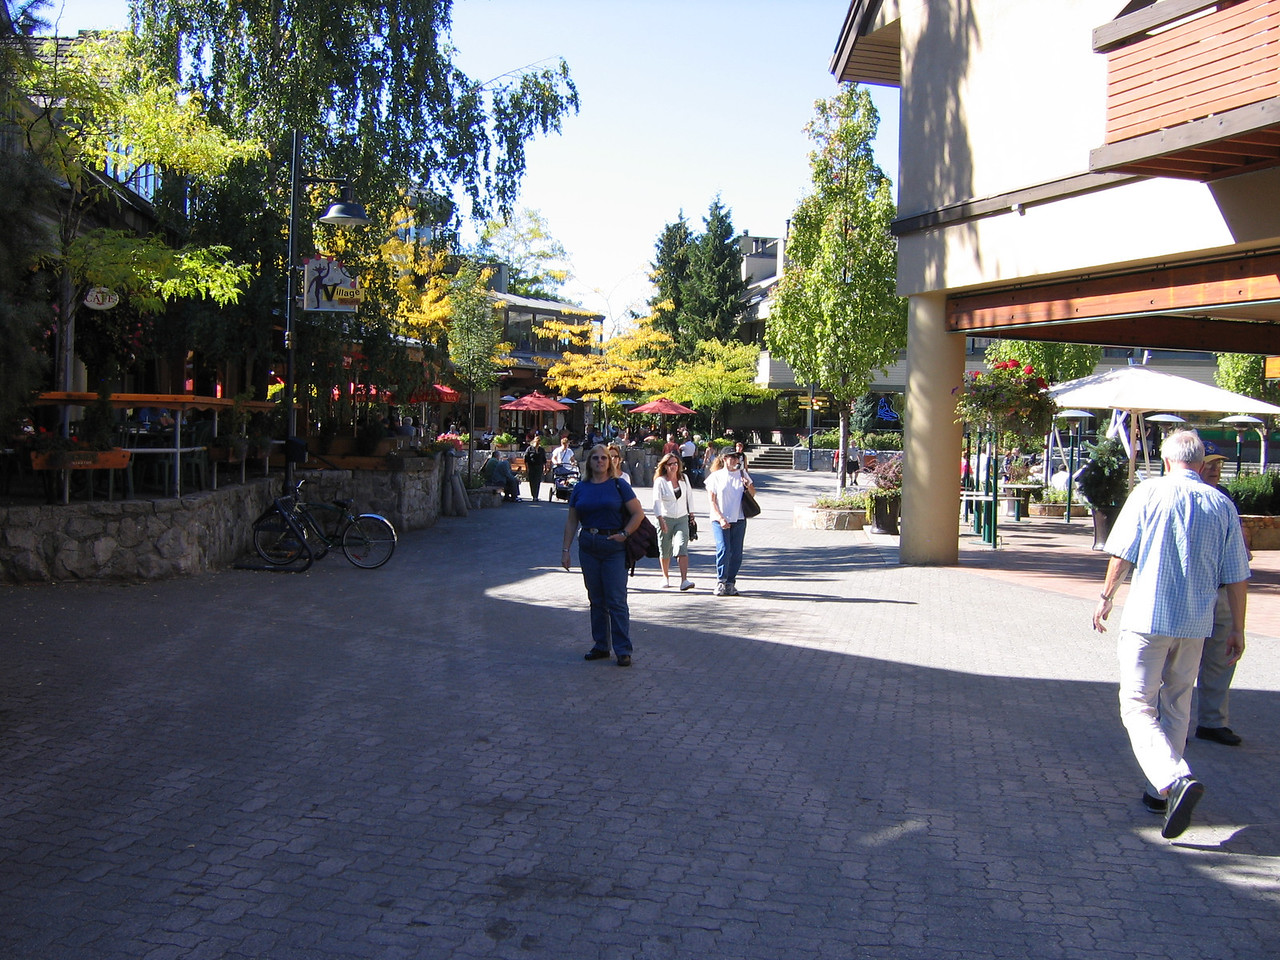 Walking in our spare hour at Whistler. Makes it hard to shop. Whew!